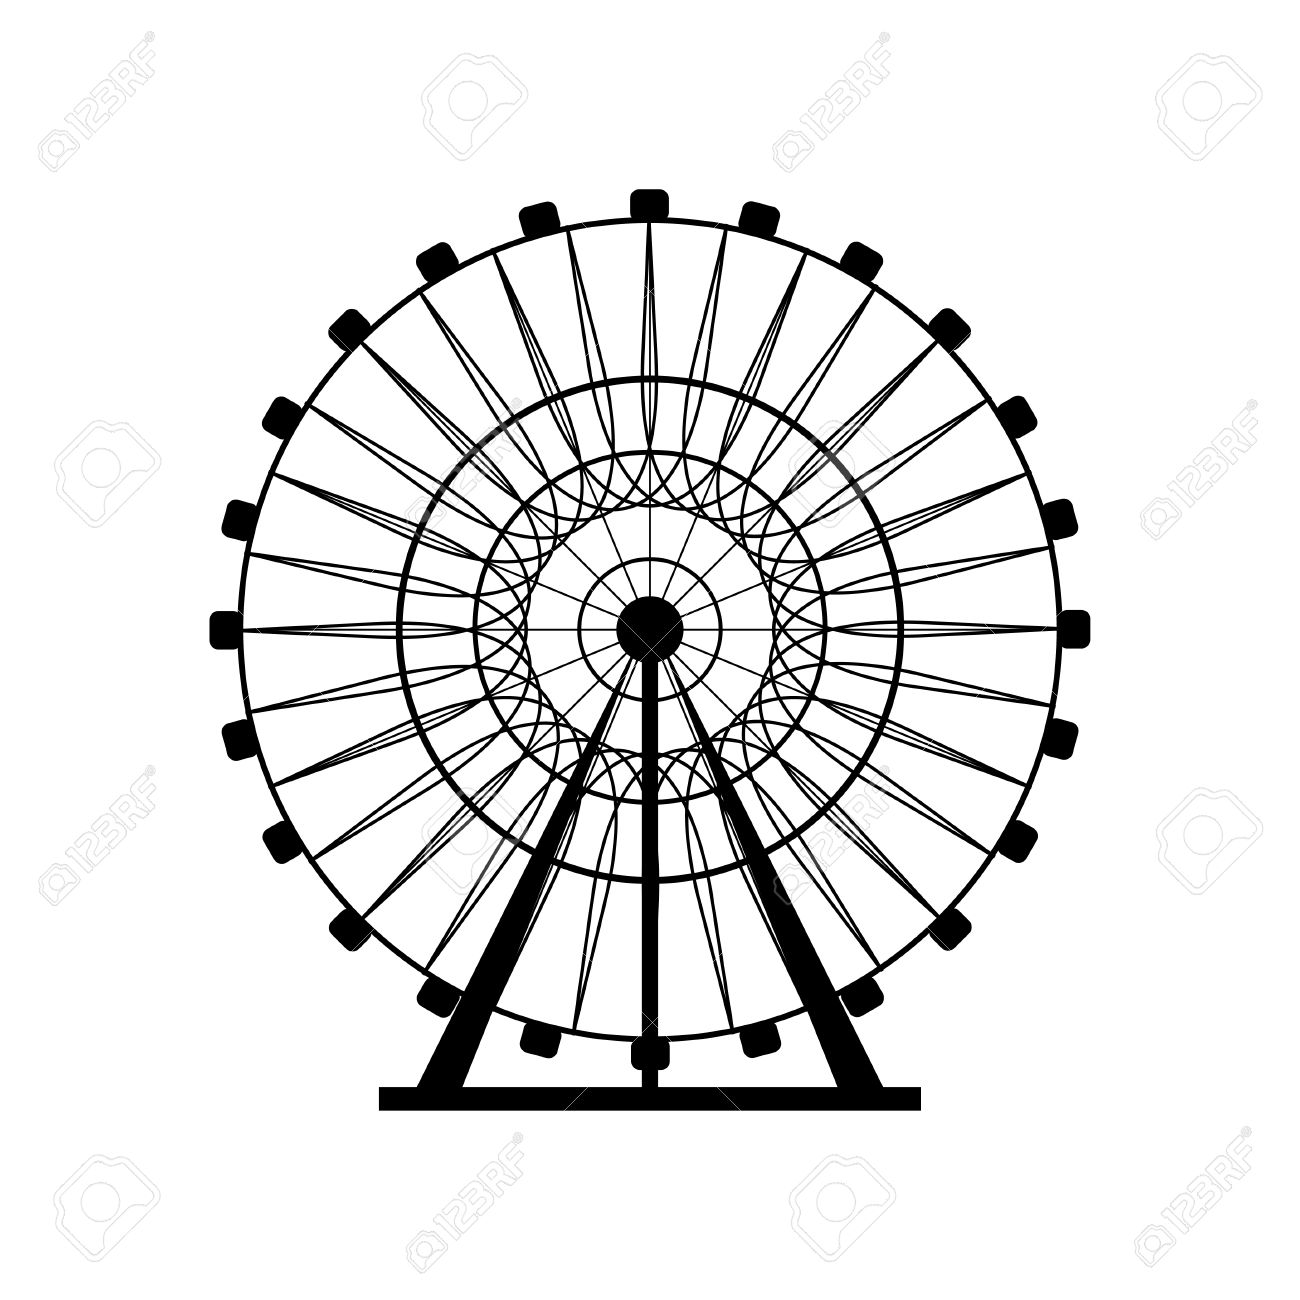 Ferris Wheel Silhouette Circle Carnival Funfair Background Carousel Royalty Free Cliparts Vectors And Stock Illustration Image 57893538